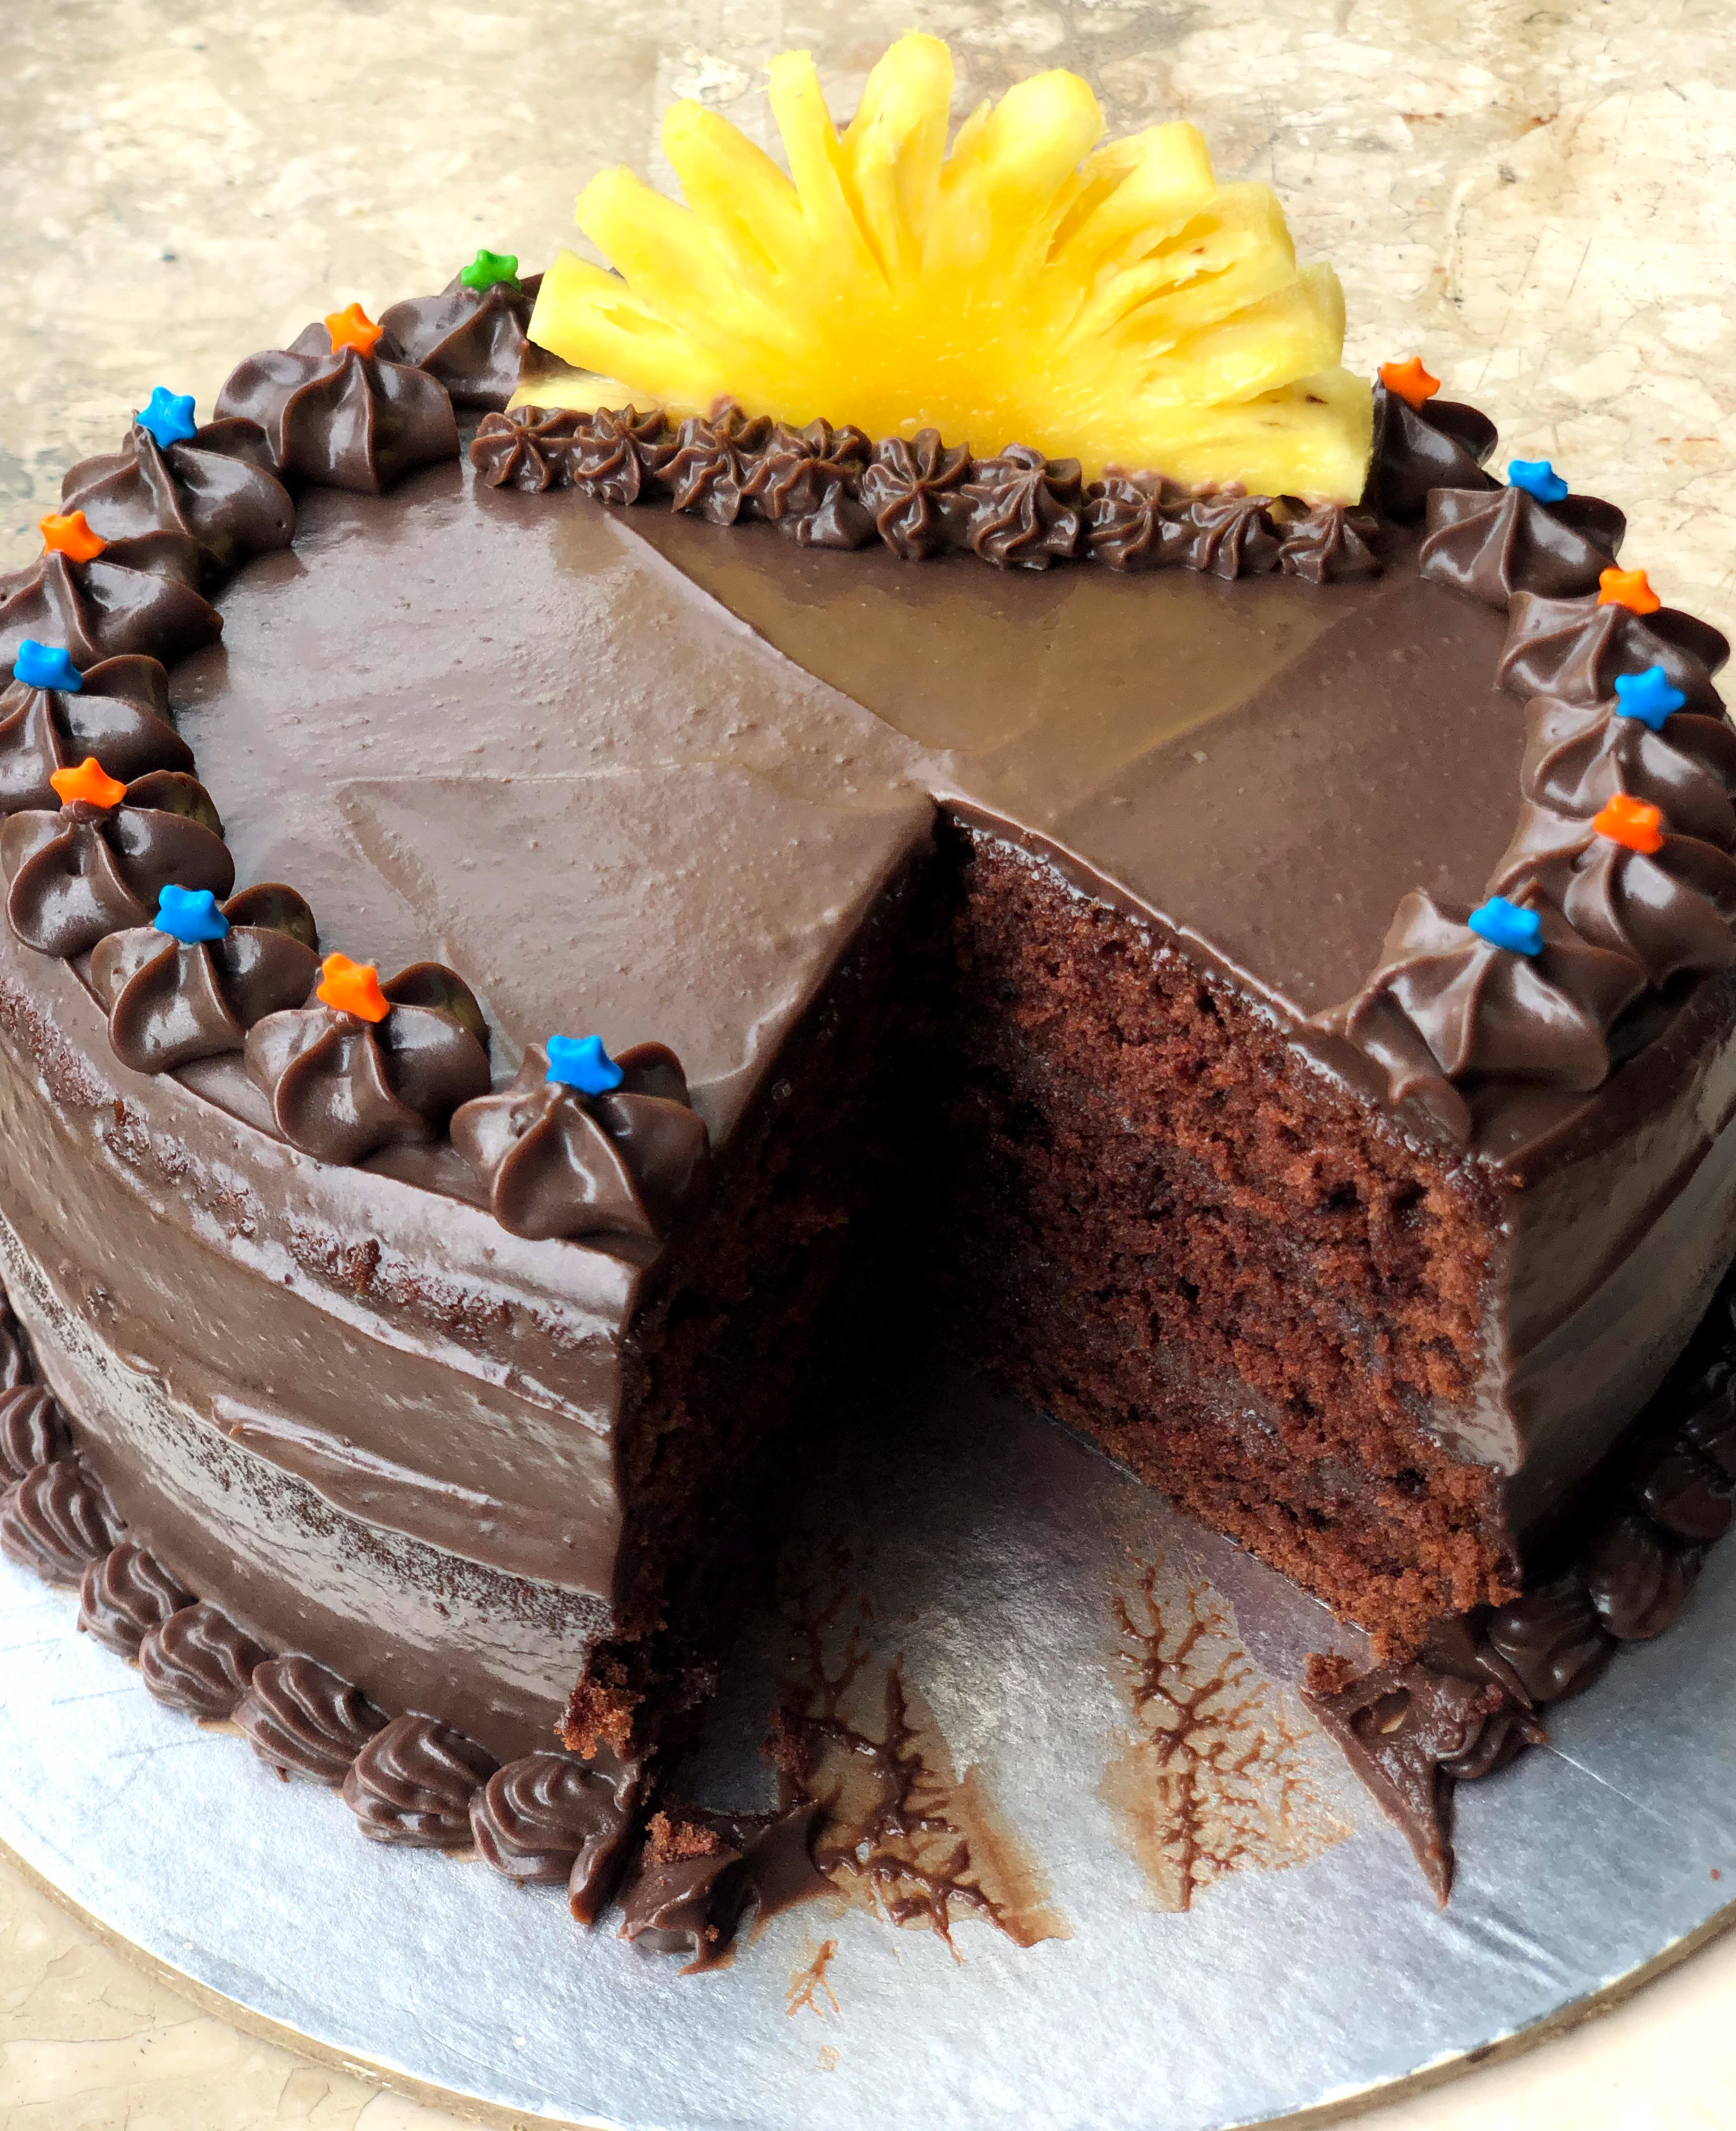 Cocoa Cake with pineapple